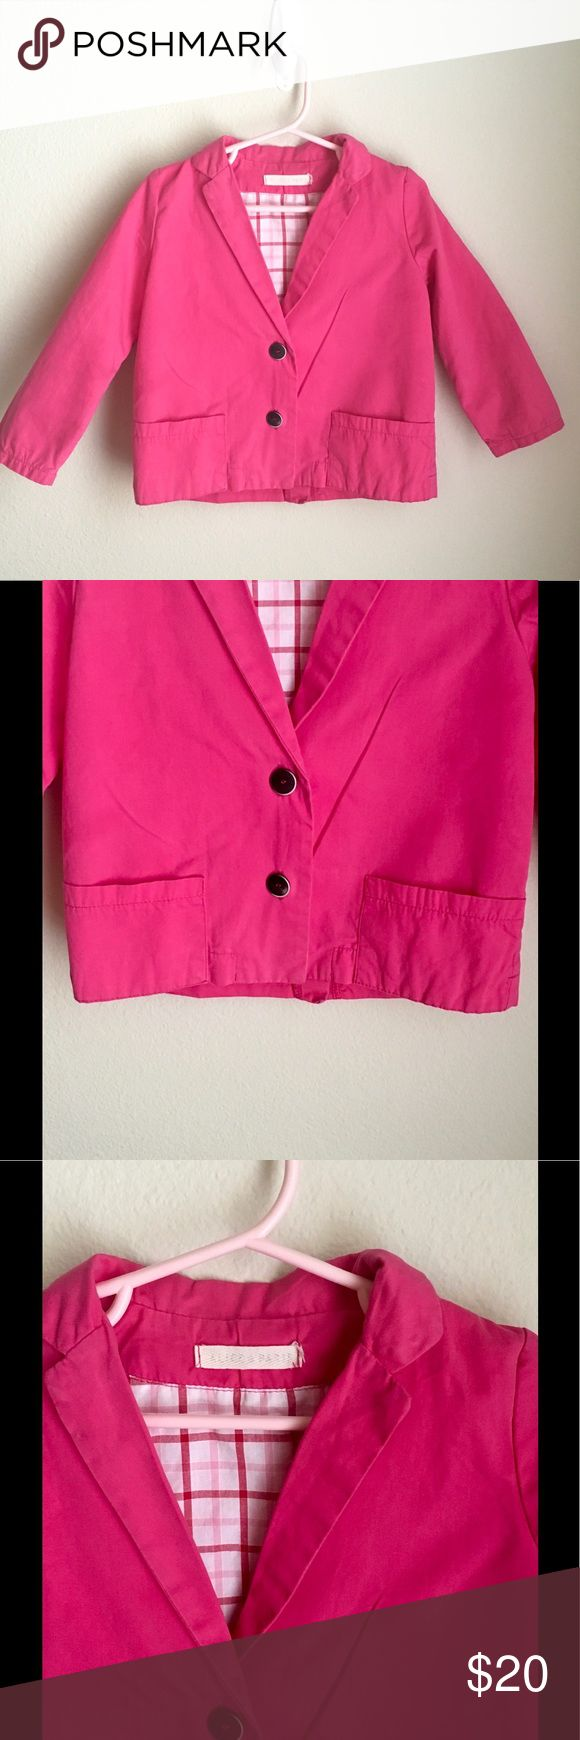 Beautiful Alice In Paris Girls Blazer Straight from France 🇫🇷! This adorable Alice In Paris girls blazer was purchased in Paris in 2013. My daughter has worn in probably a dozen times. We have received so many compliments on it. It is is gently used condition.  For sale only. No trades. I am happy to combine shipping with other items. Alice In Paris Jackets & Coats Blazers